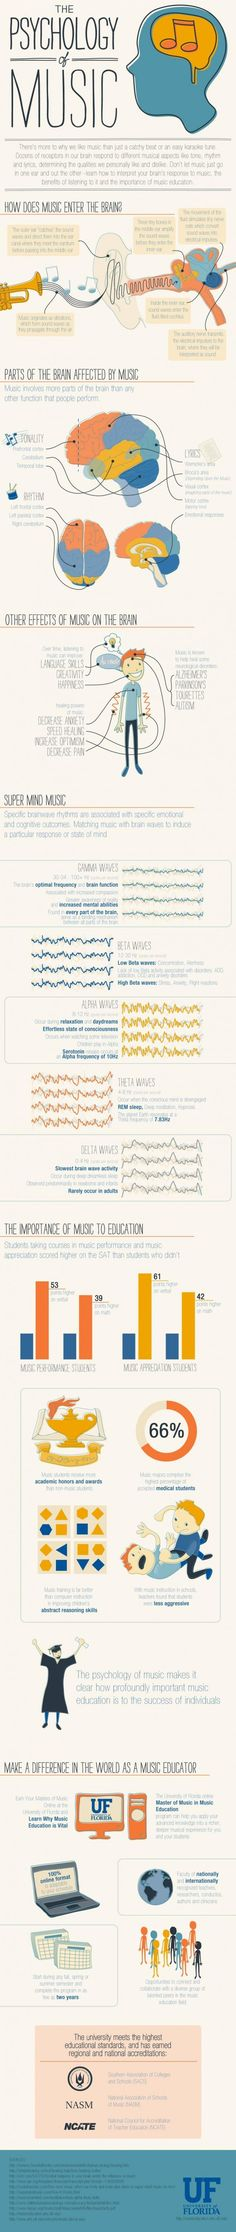 The Psychology of Music for all ages